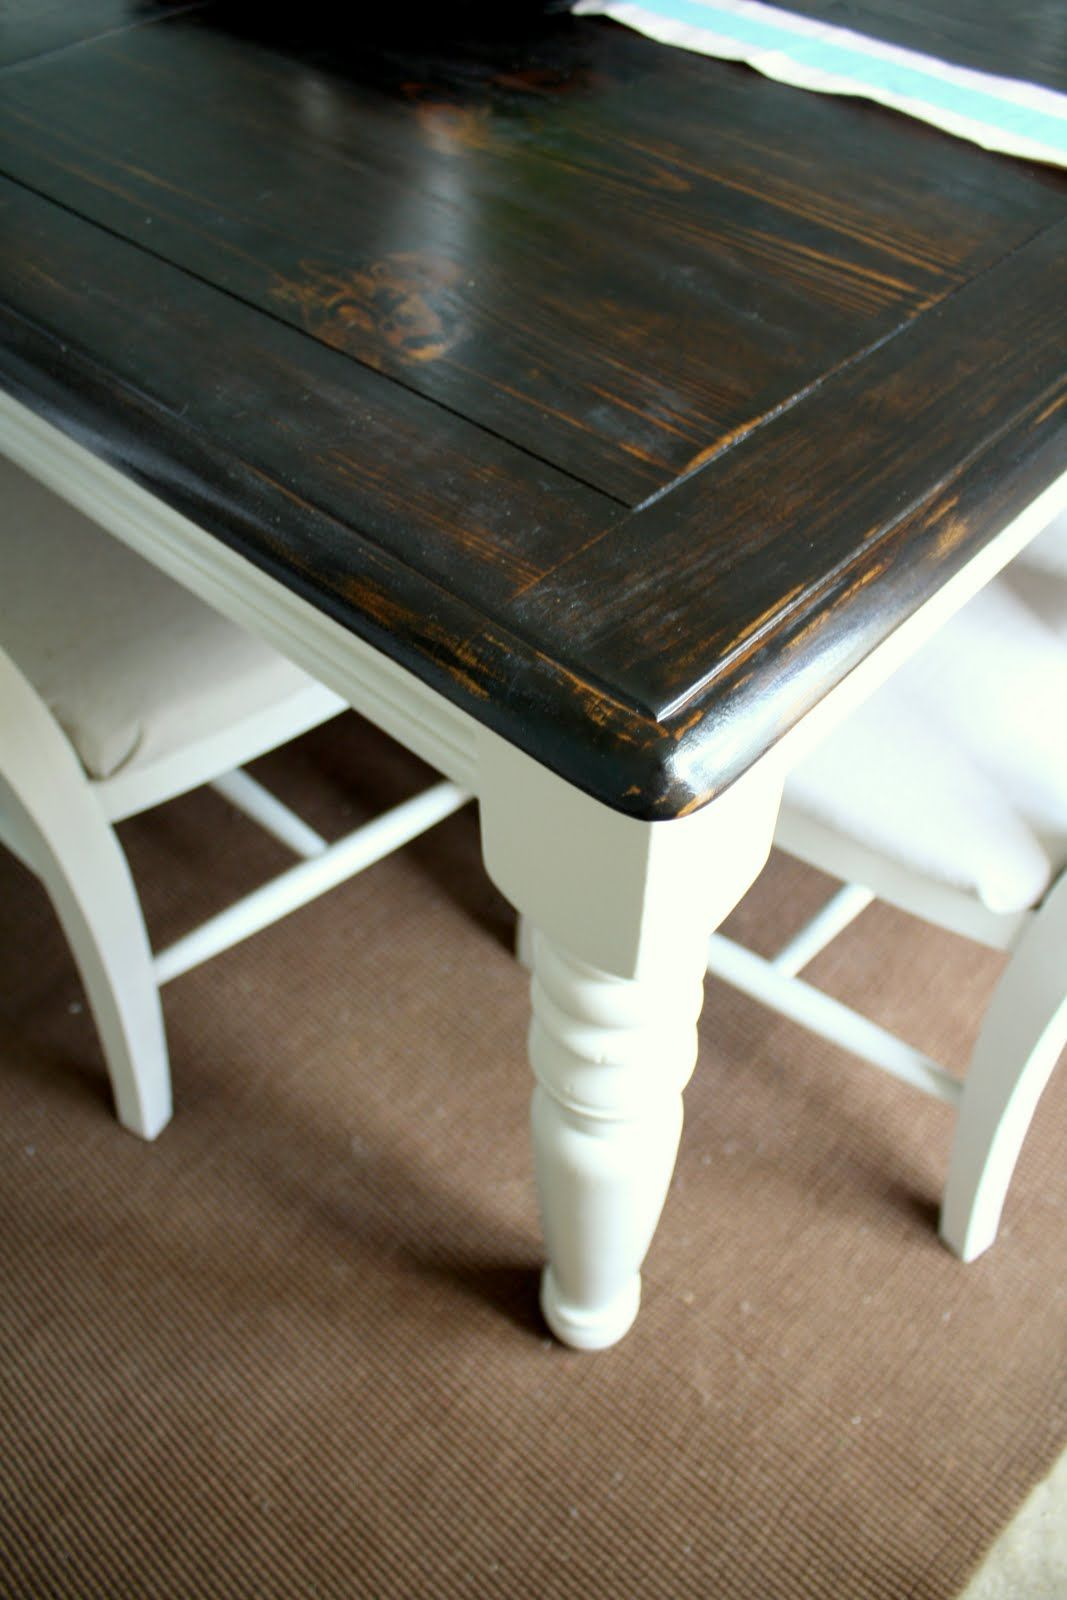 Refurbished Dining Tables On Pinterest Painted Table Dining Refurbished Kitchen Tables And